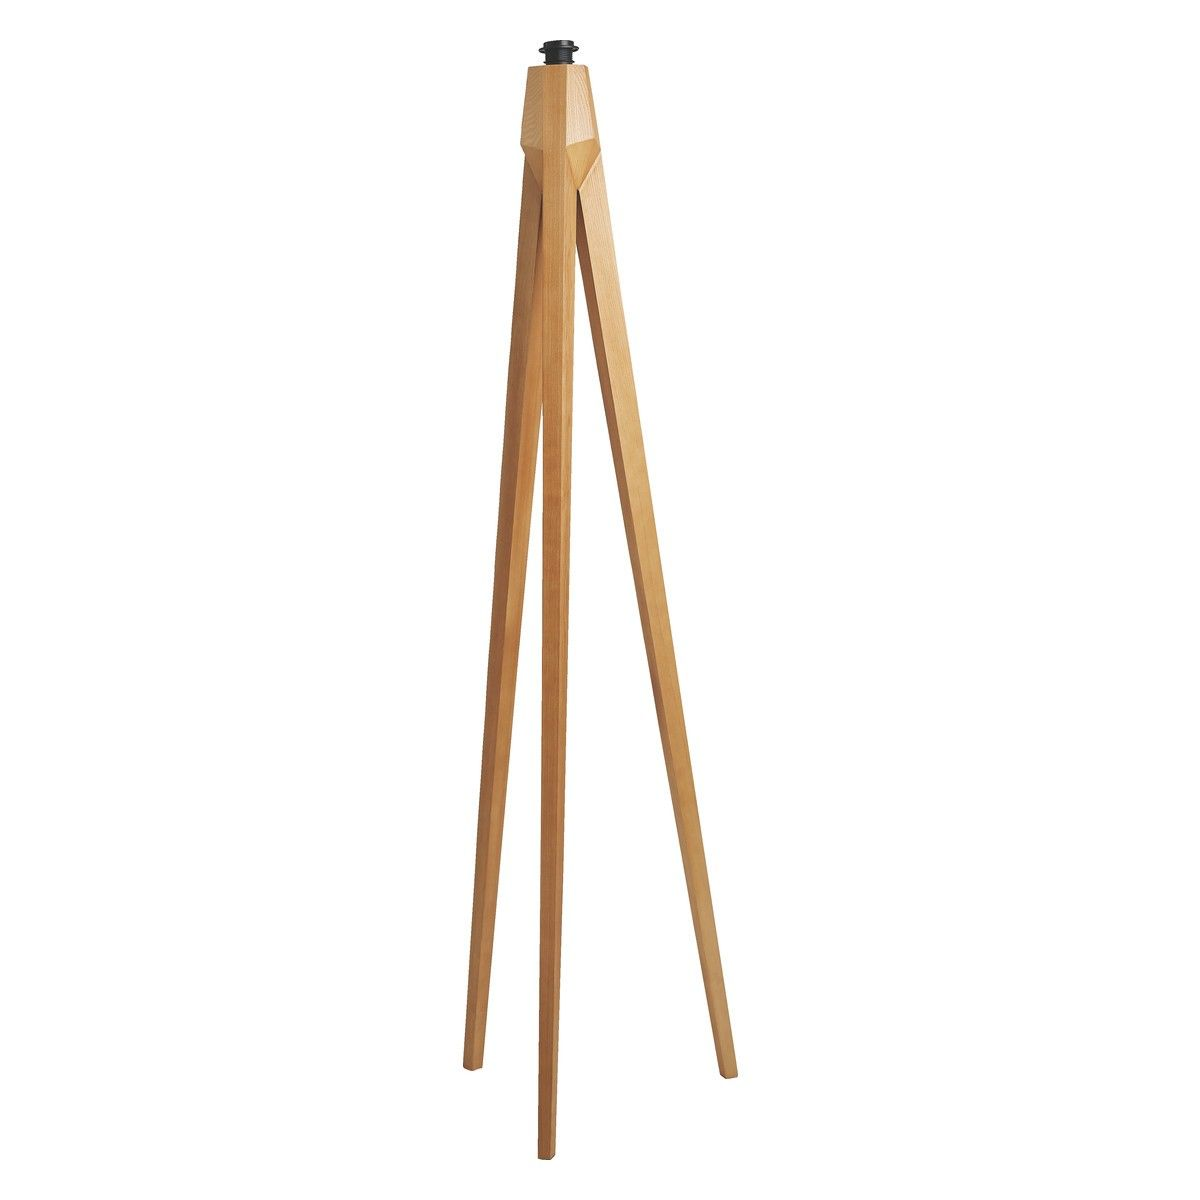 Tripod Base Ash Wooden Tripod Floor Lamp Wooden Tripod Floor Lamp Tripod Floor Lamps Tripod Floor